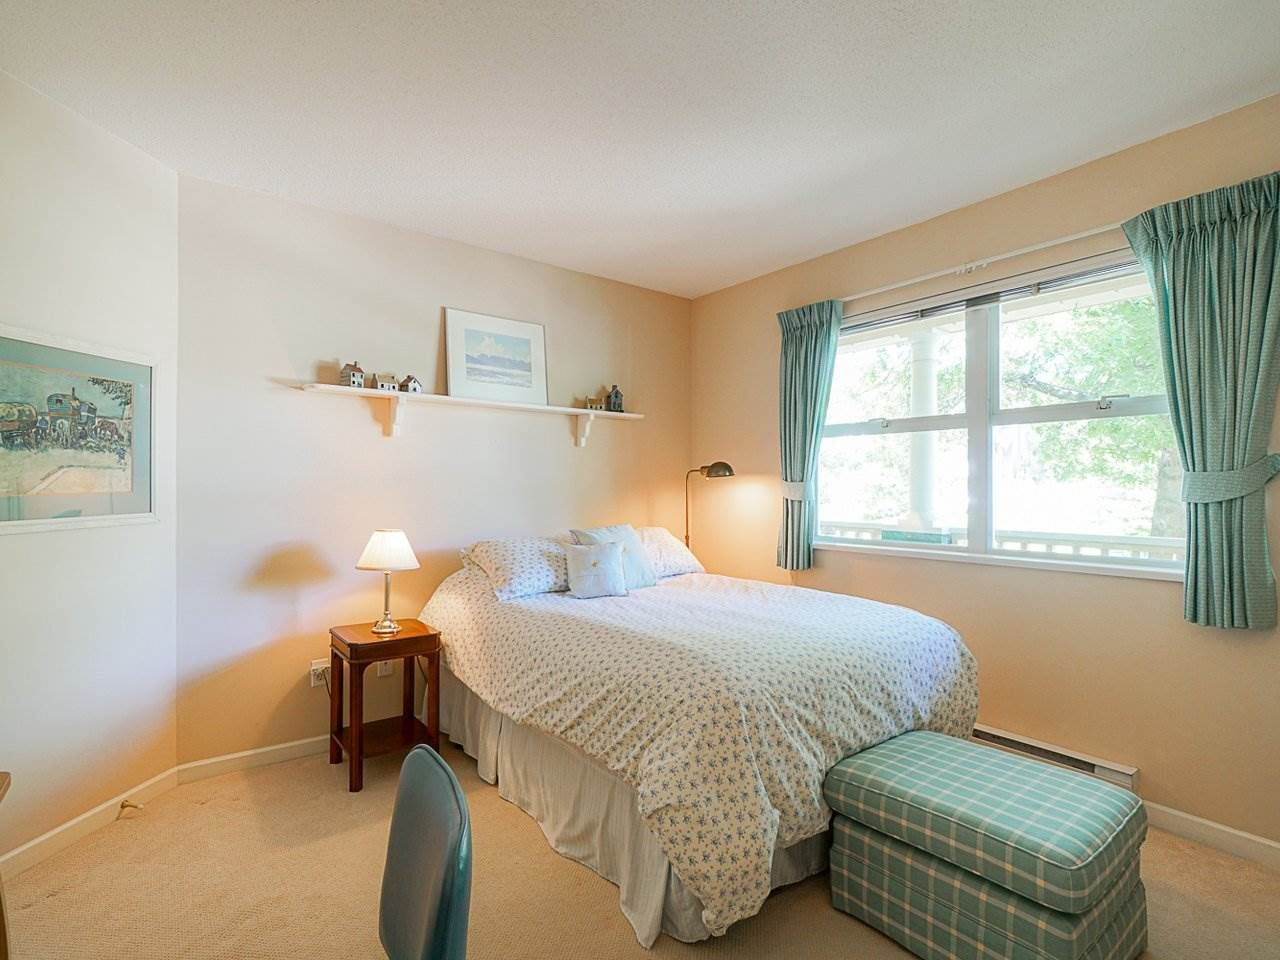 """Photo 14: Photos: 4 235 E KEITH Road in North Vancouver: Lower Lonsdale Townhouse for sale in """"Carriage Hill"""" : MLS®# R2471169"""